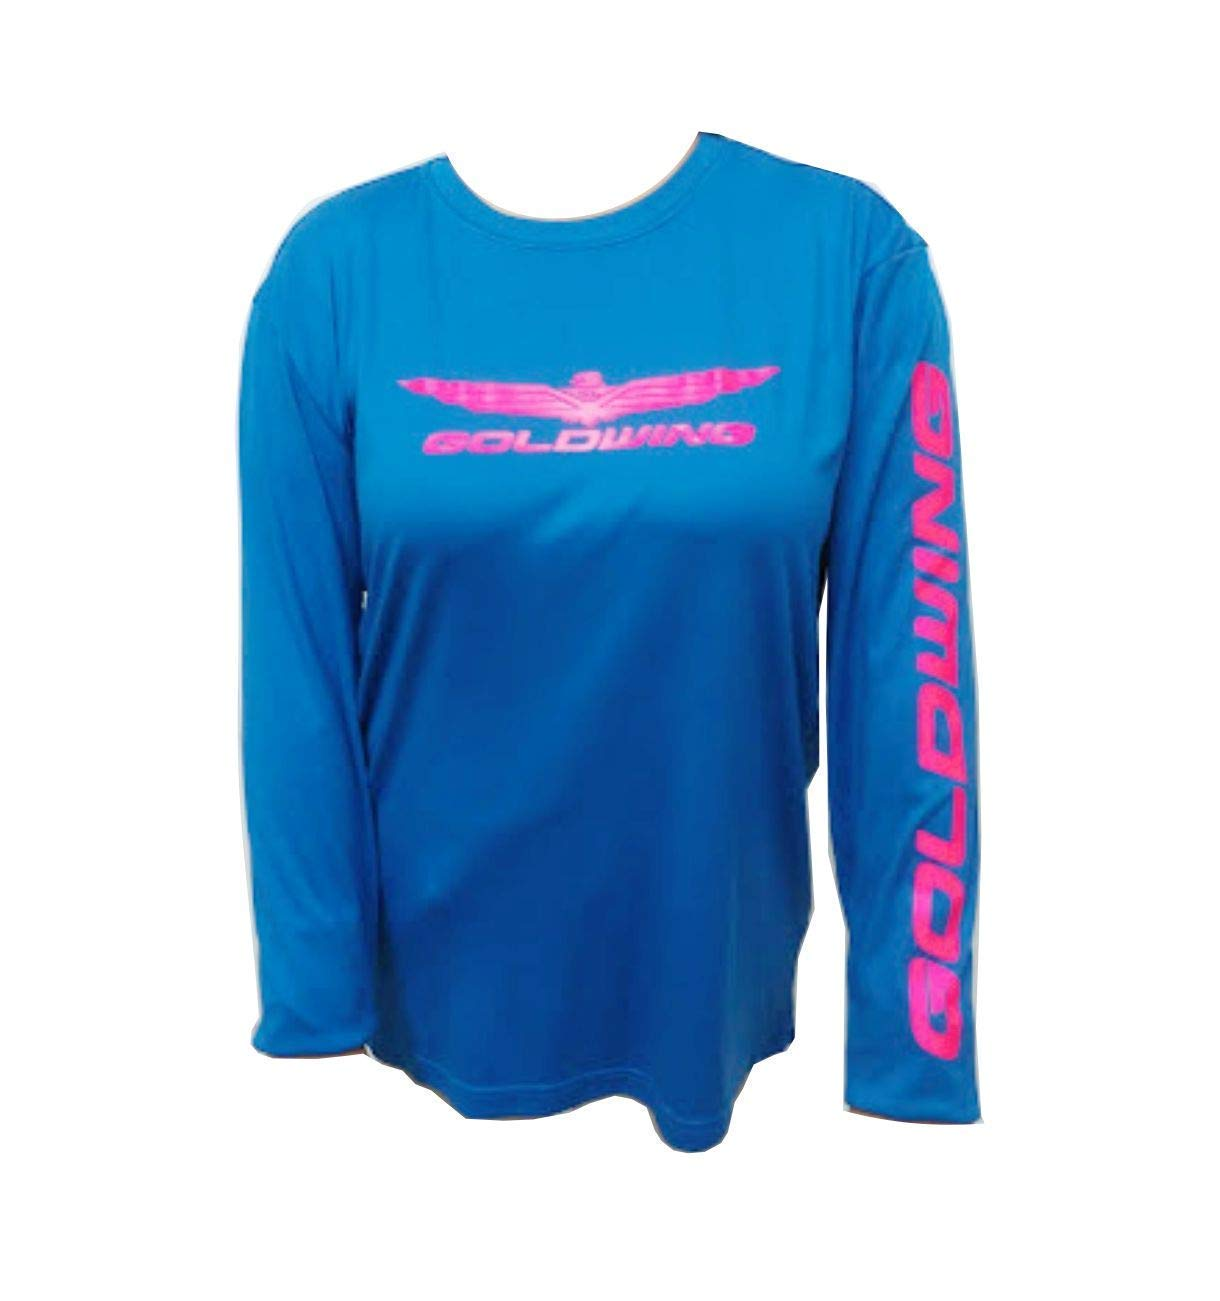 Mens Long Sleeve Goldwing 1800 T-shirt high visibility safety green